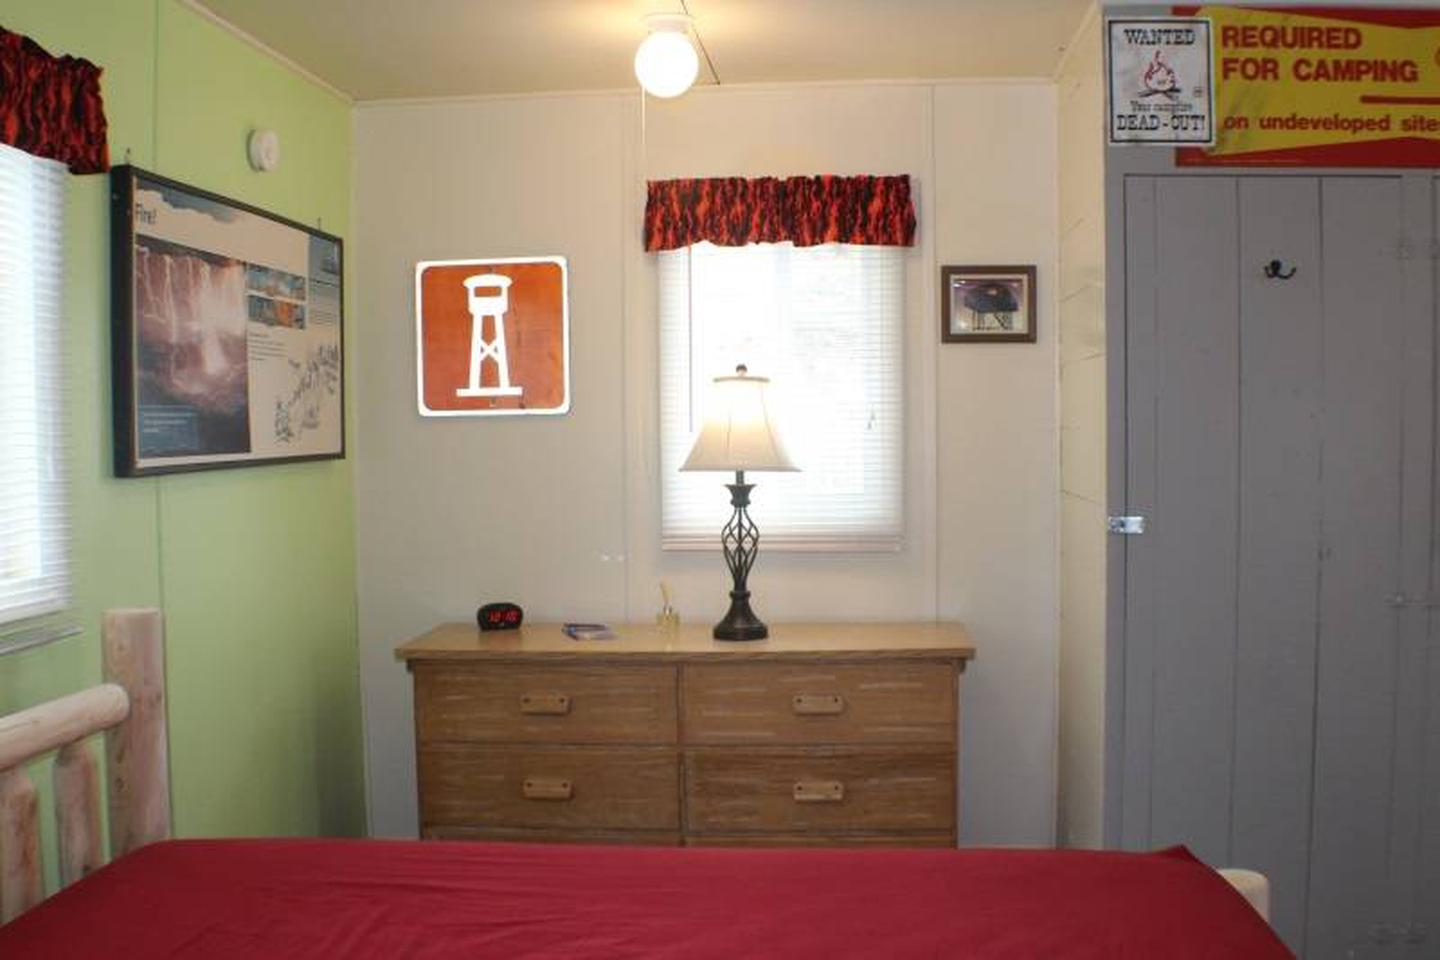 dresser, lampCabin 4: View to right of full bed. Dresser with lamp and alarm clock with USB charging port.